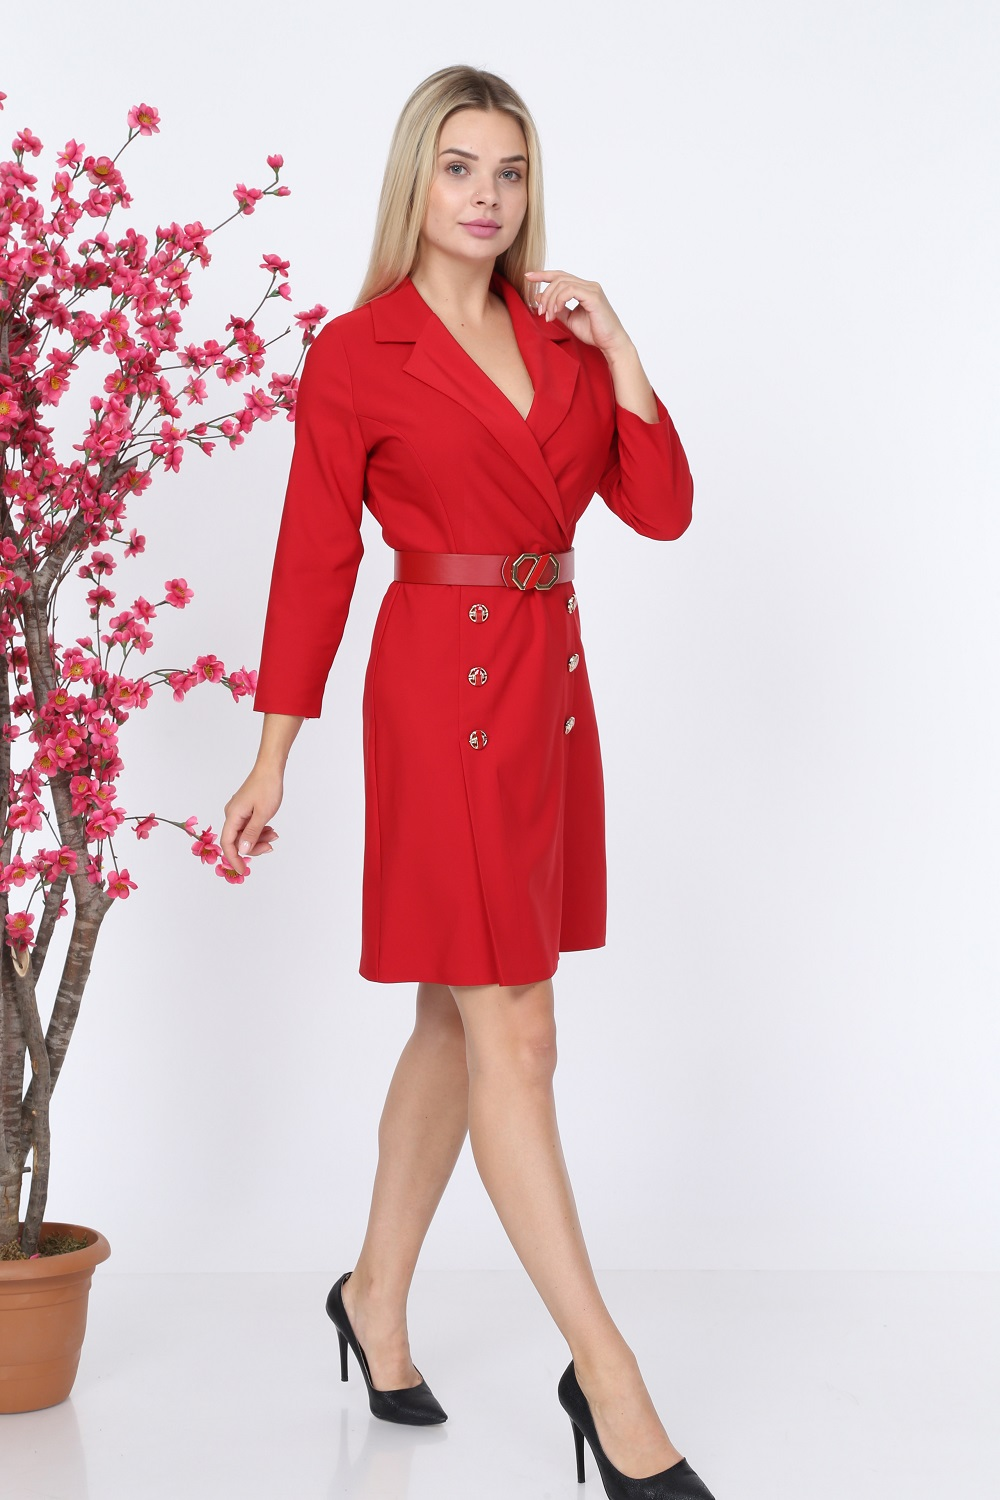 Collar Buttoned Red Color Dress